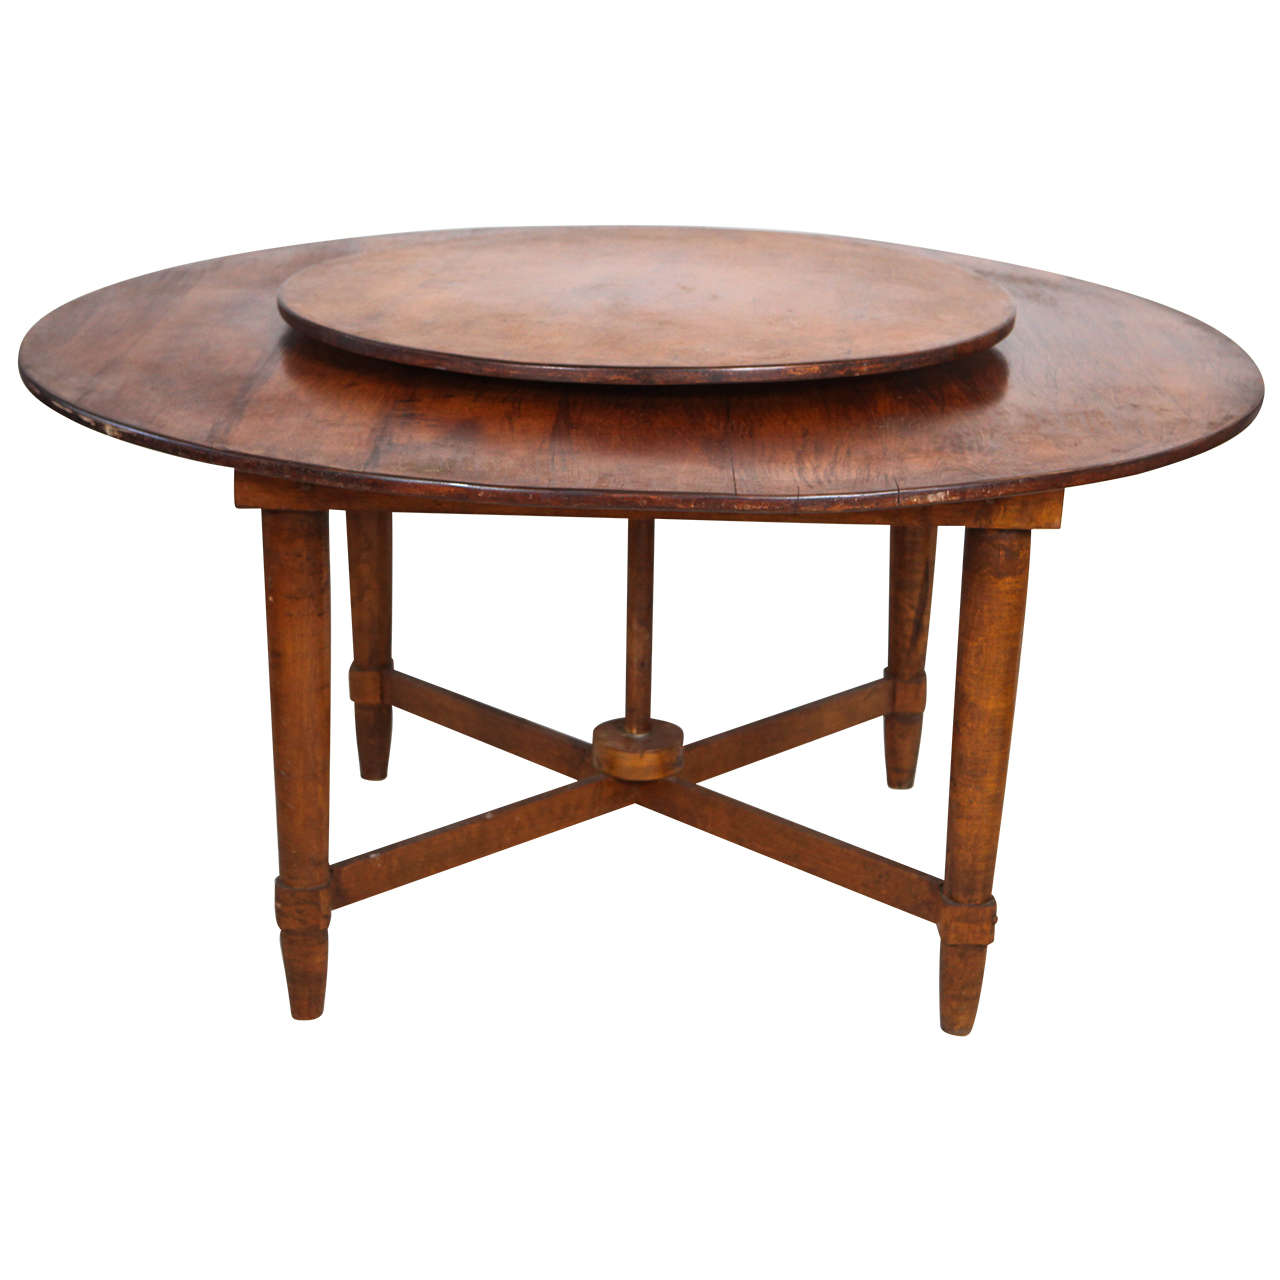 Distinct Rustic Round Dining Table With Built In Lazy Susan